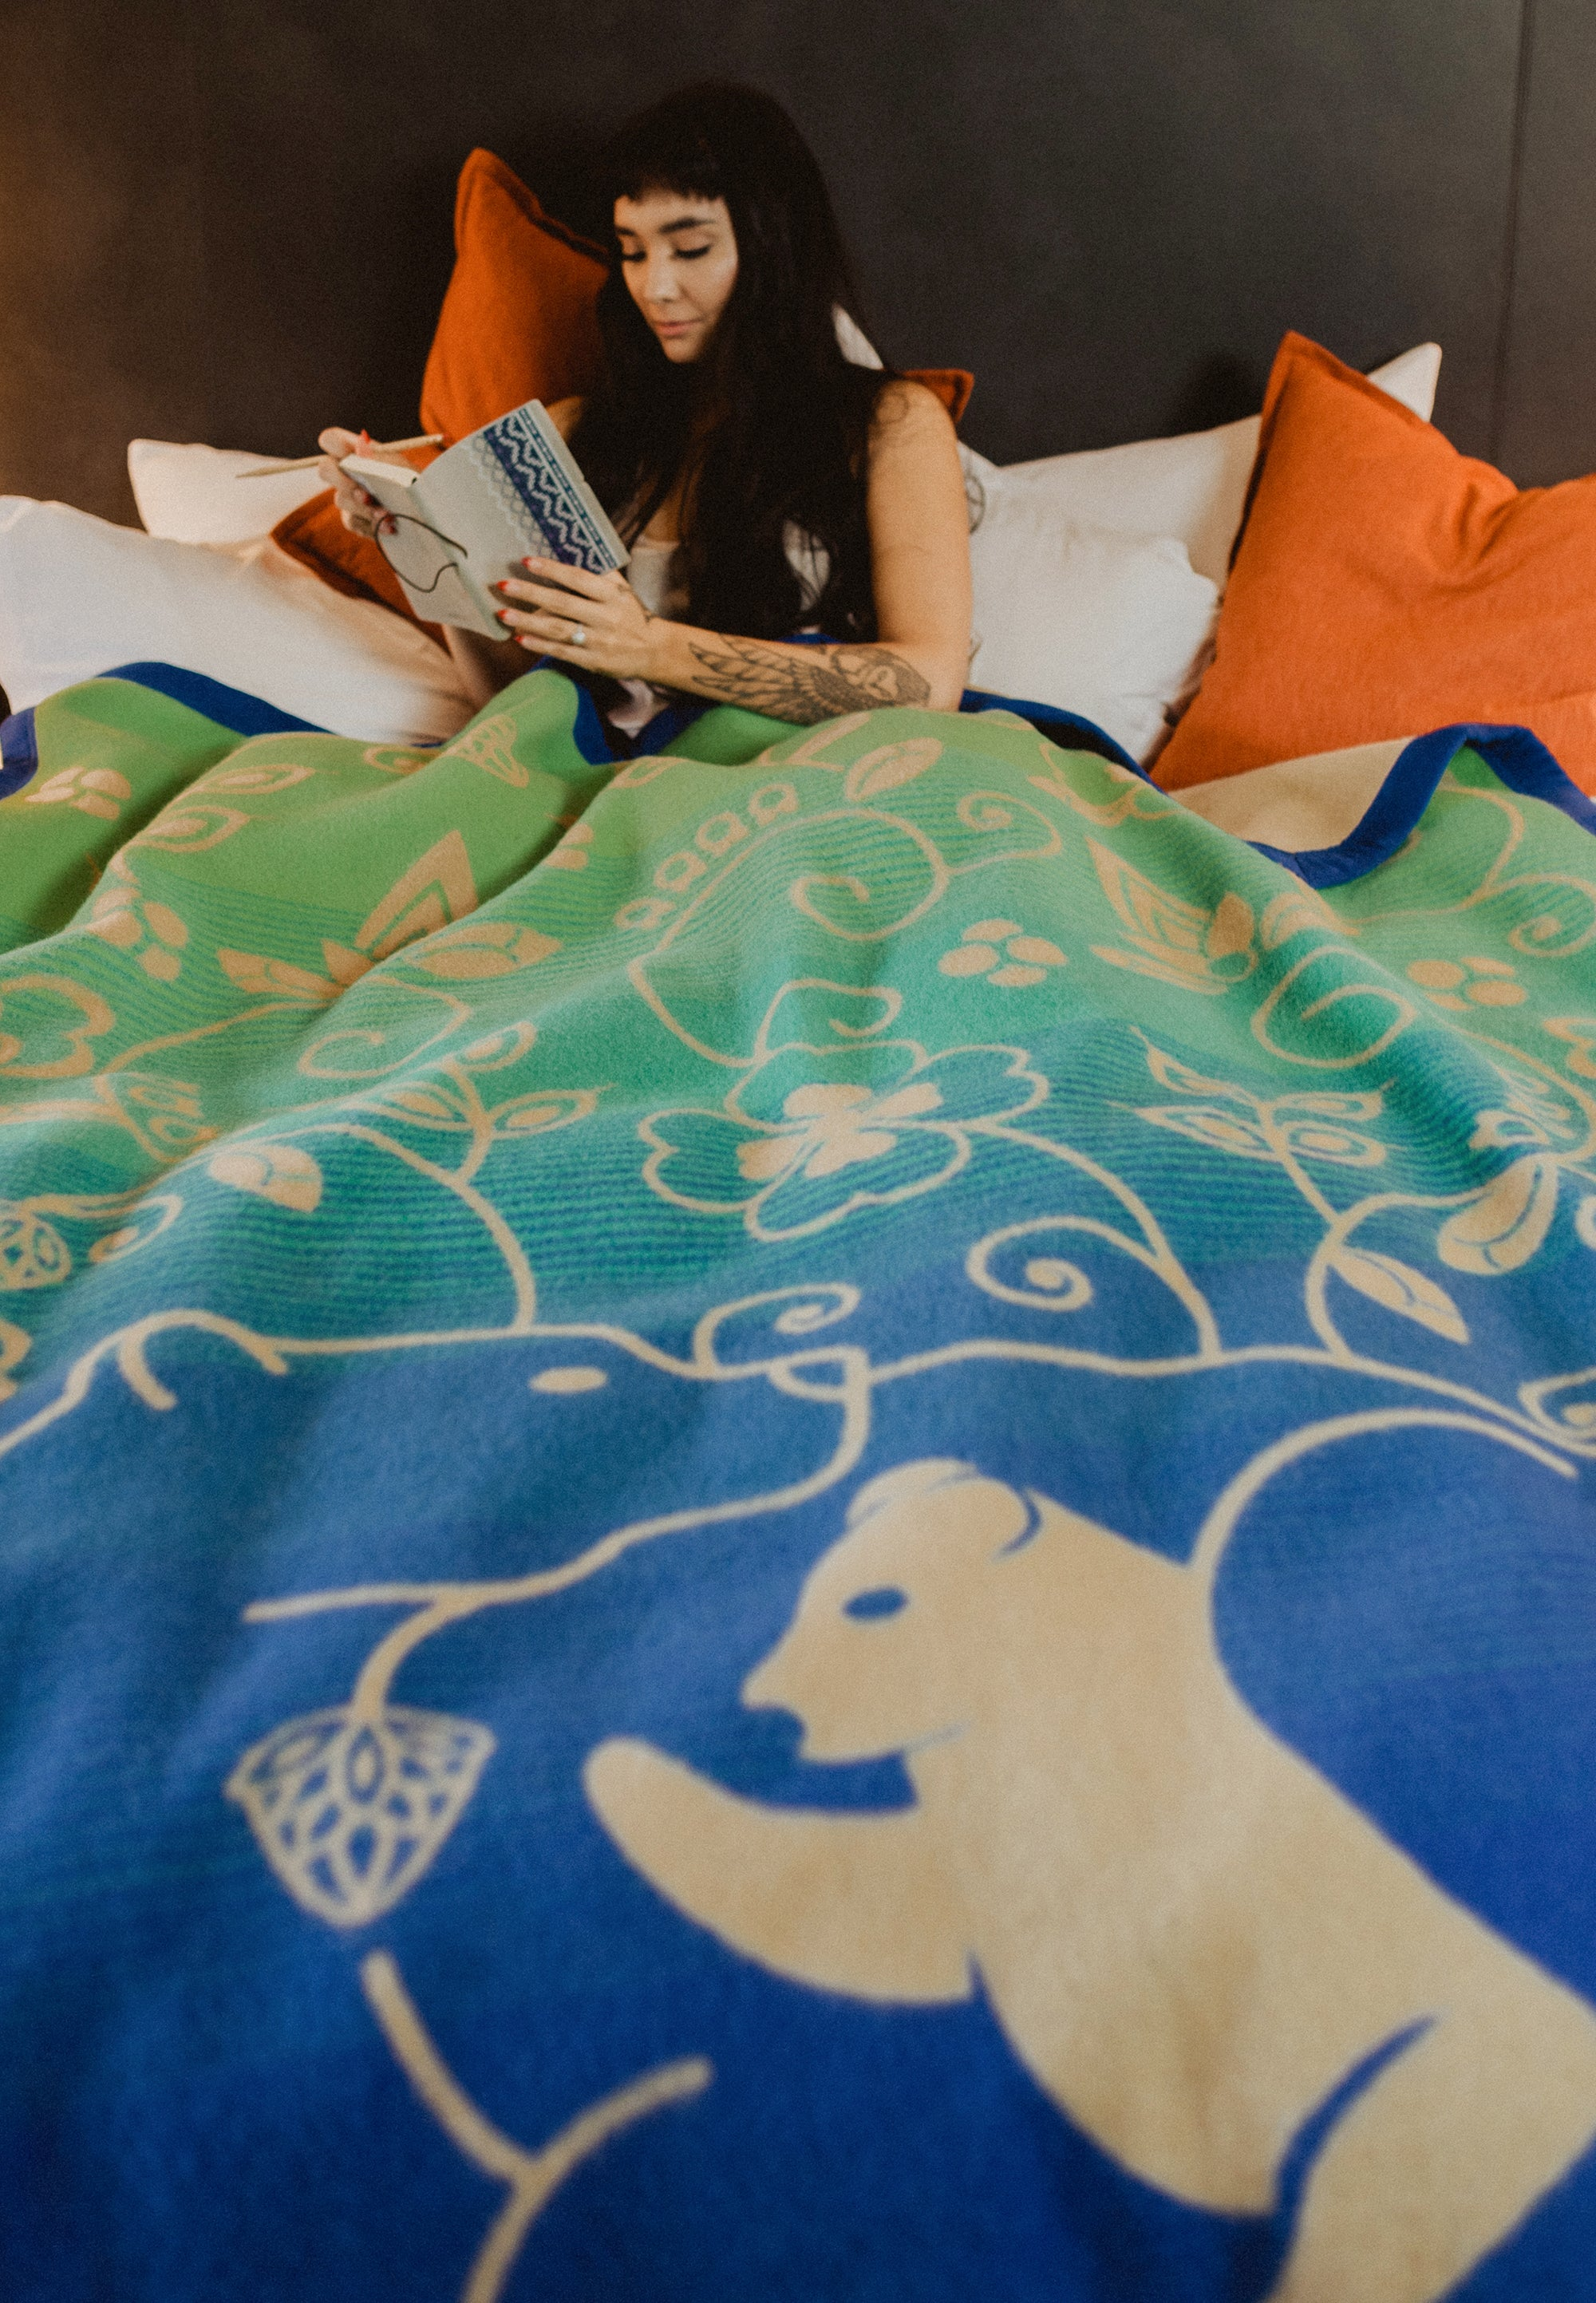 Woman-reads-in-bed-with-blue-tan-and-green-wool-blanket-covering-her.-Blanket-has-bear-and-cub-design-surrounded-by-woodlands-floral